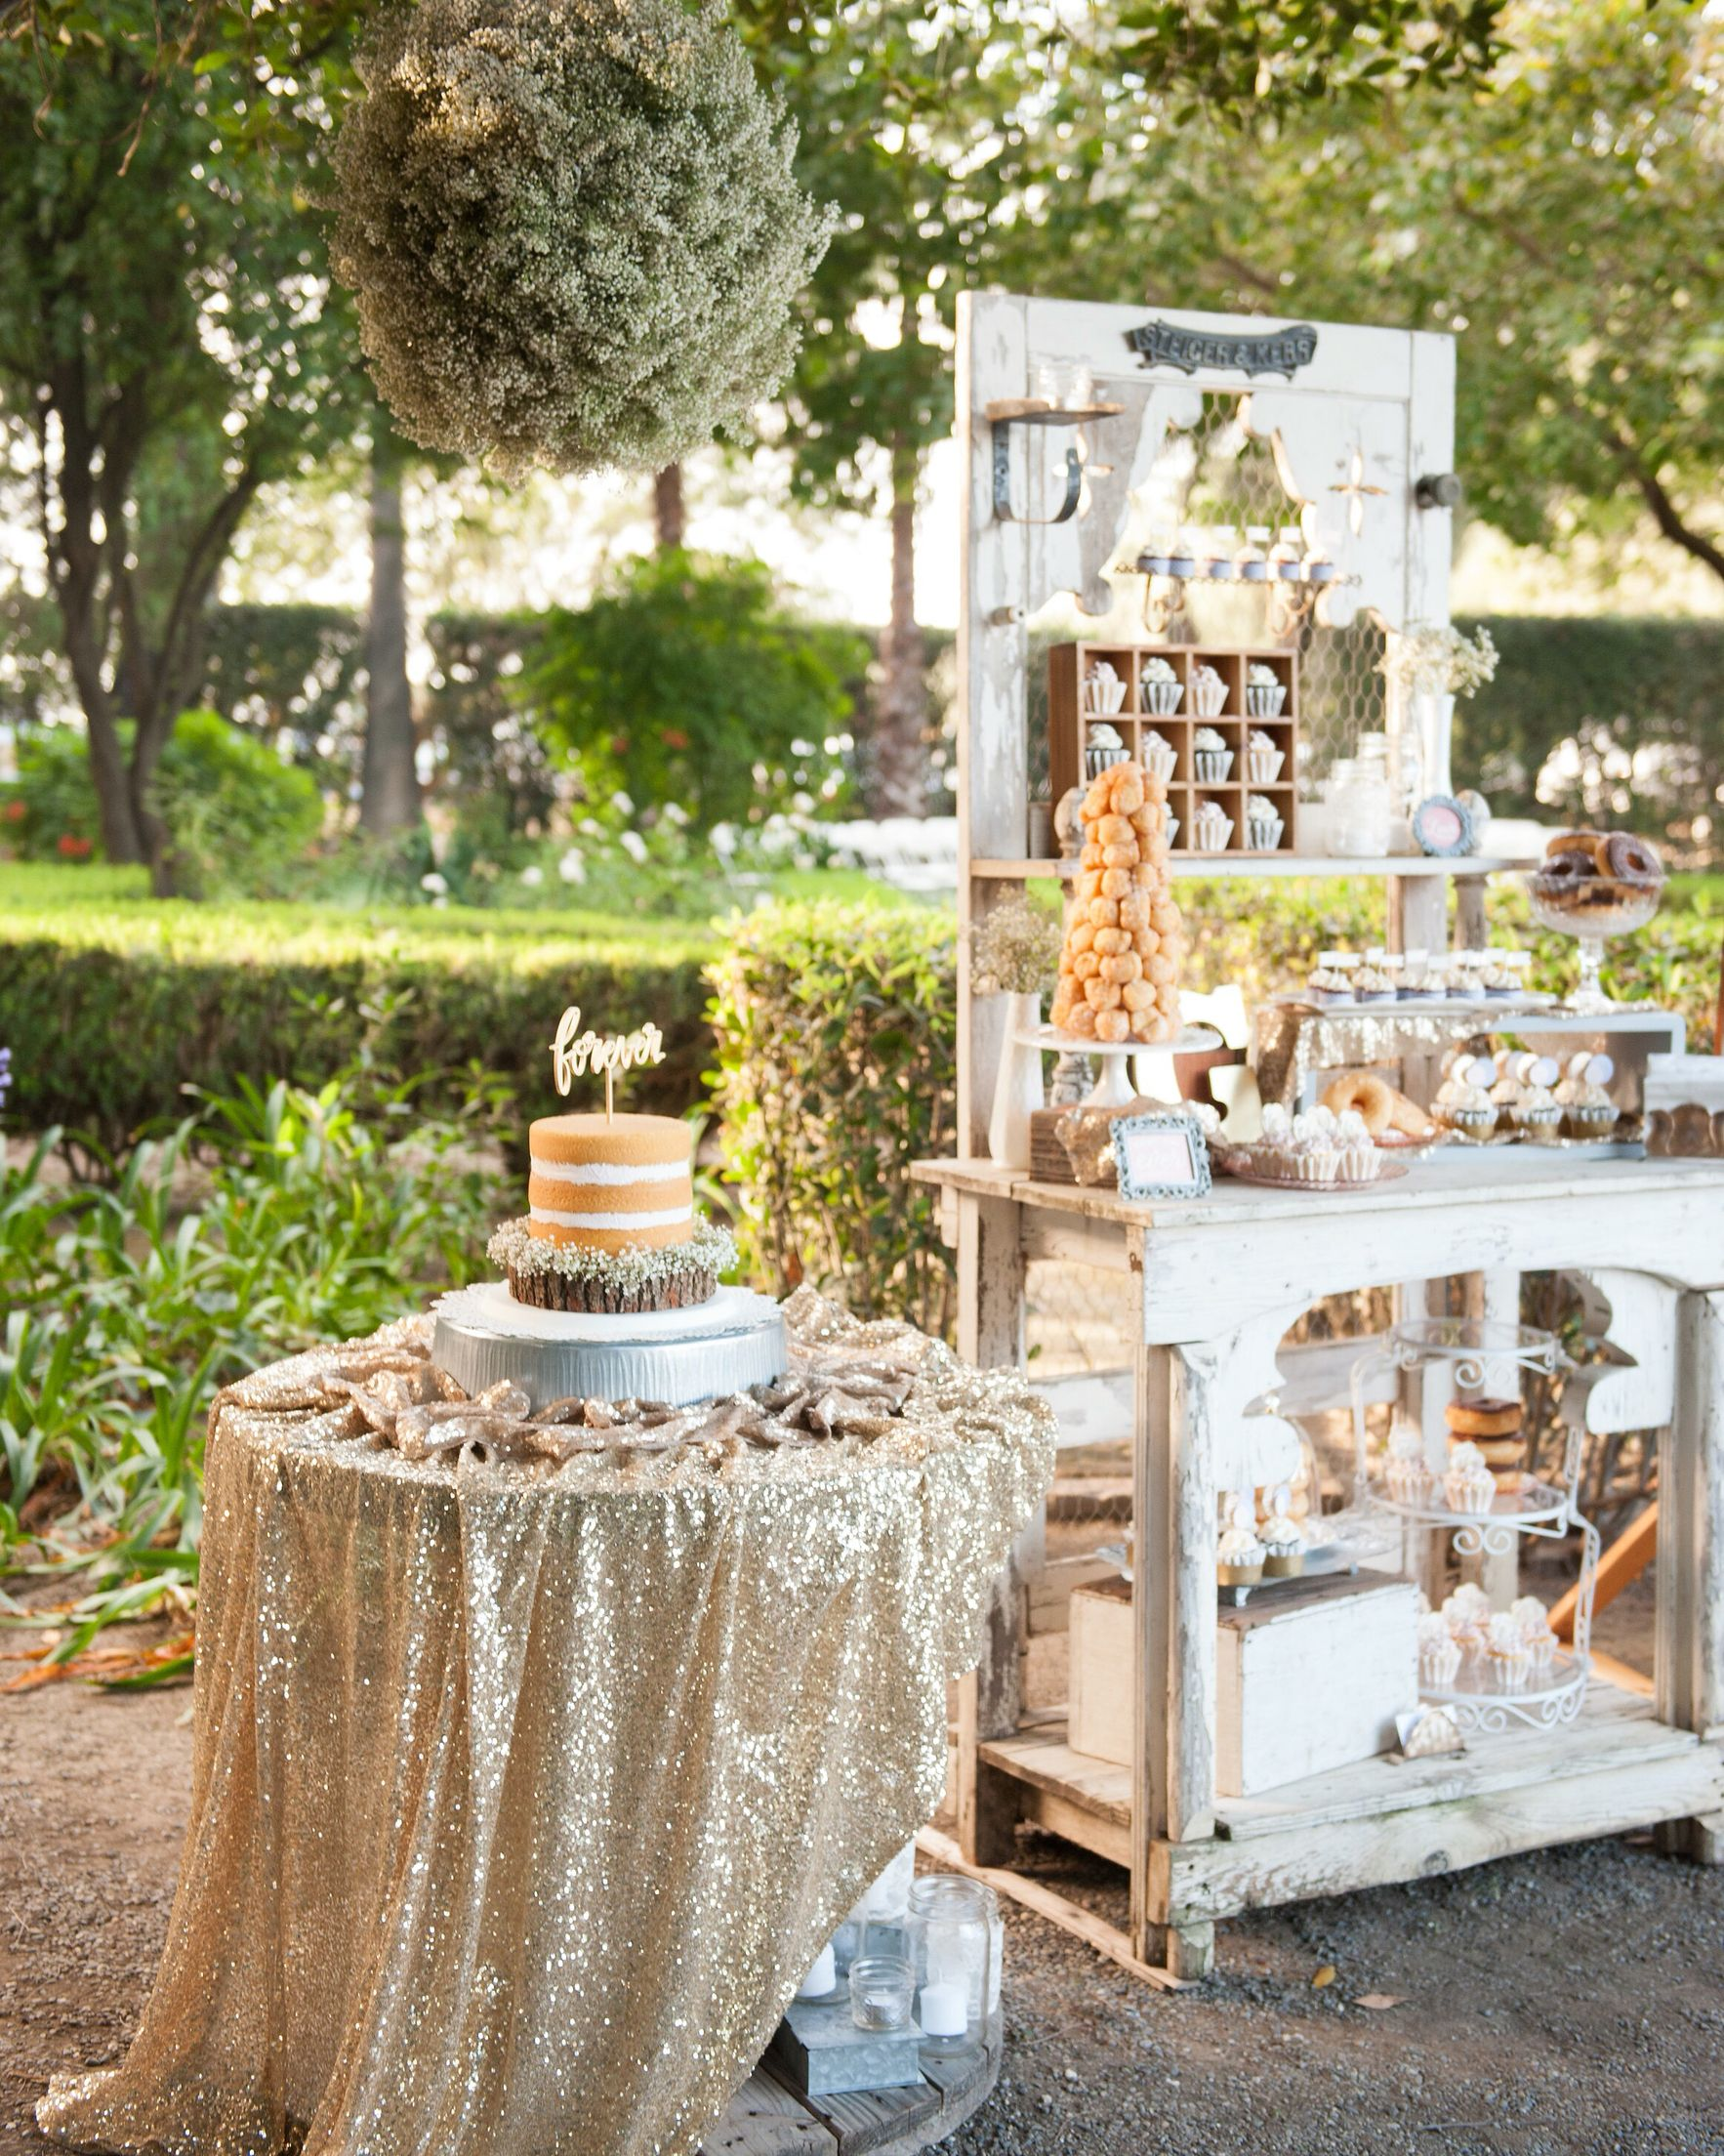 dessert table / dessert bar , donuts, cupcakes, cookies & more